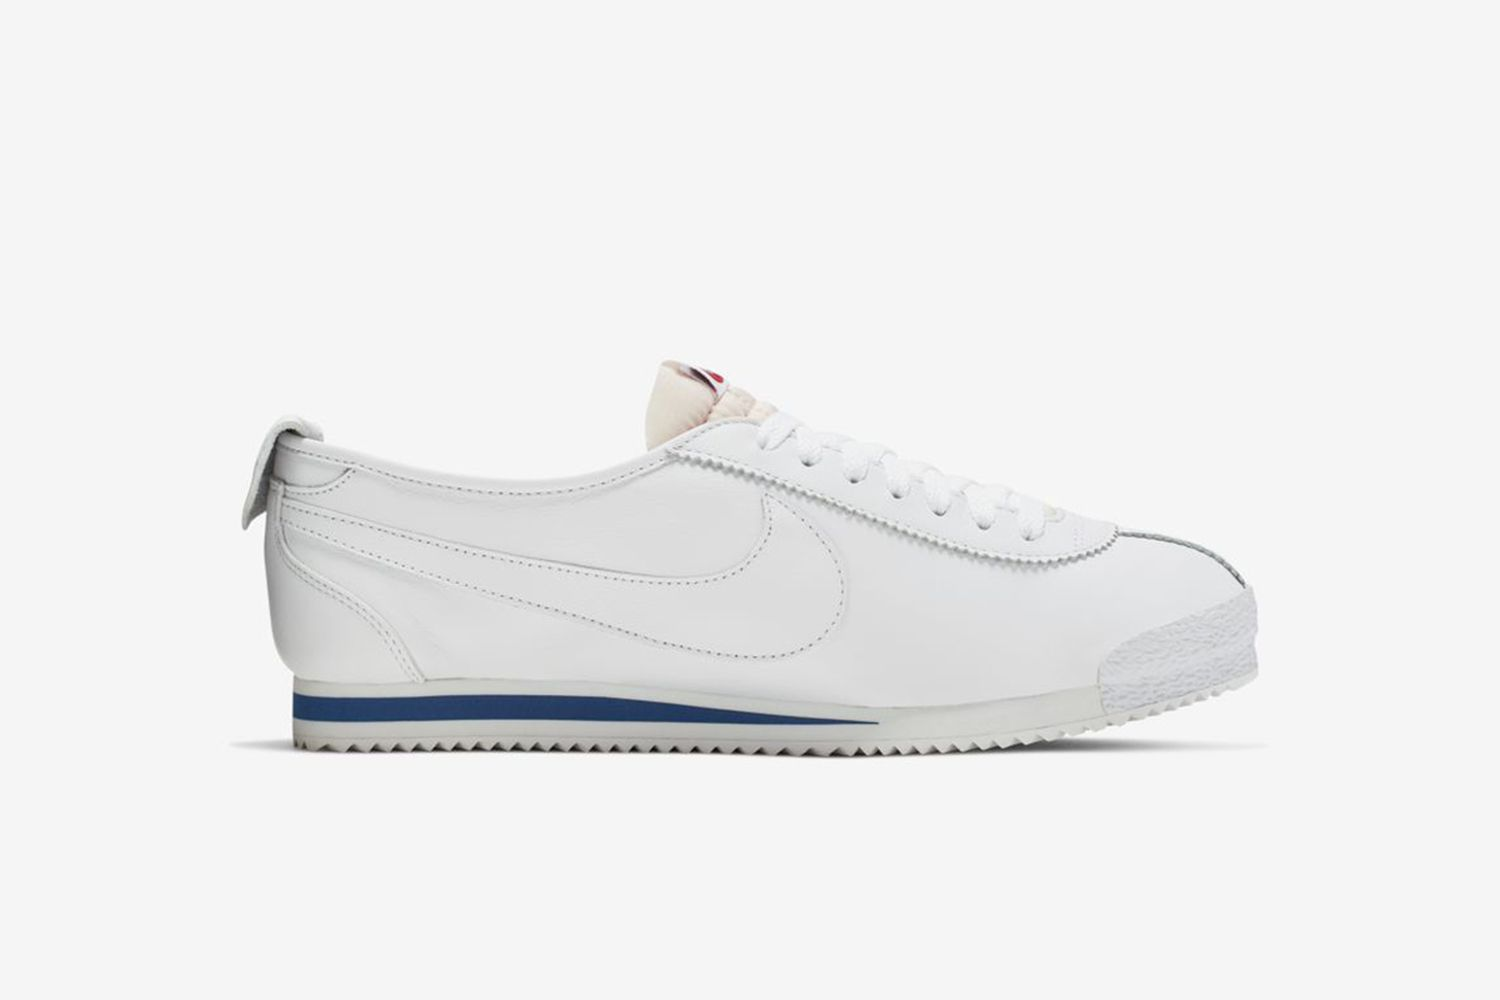 Classic Cortez Shoe Dog Pack 'Nike'